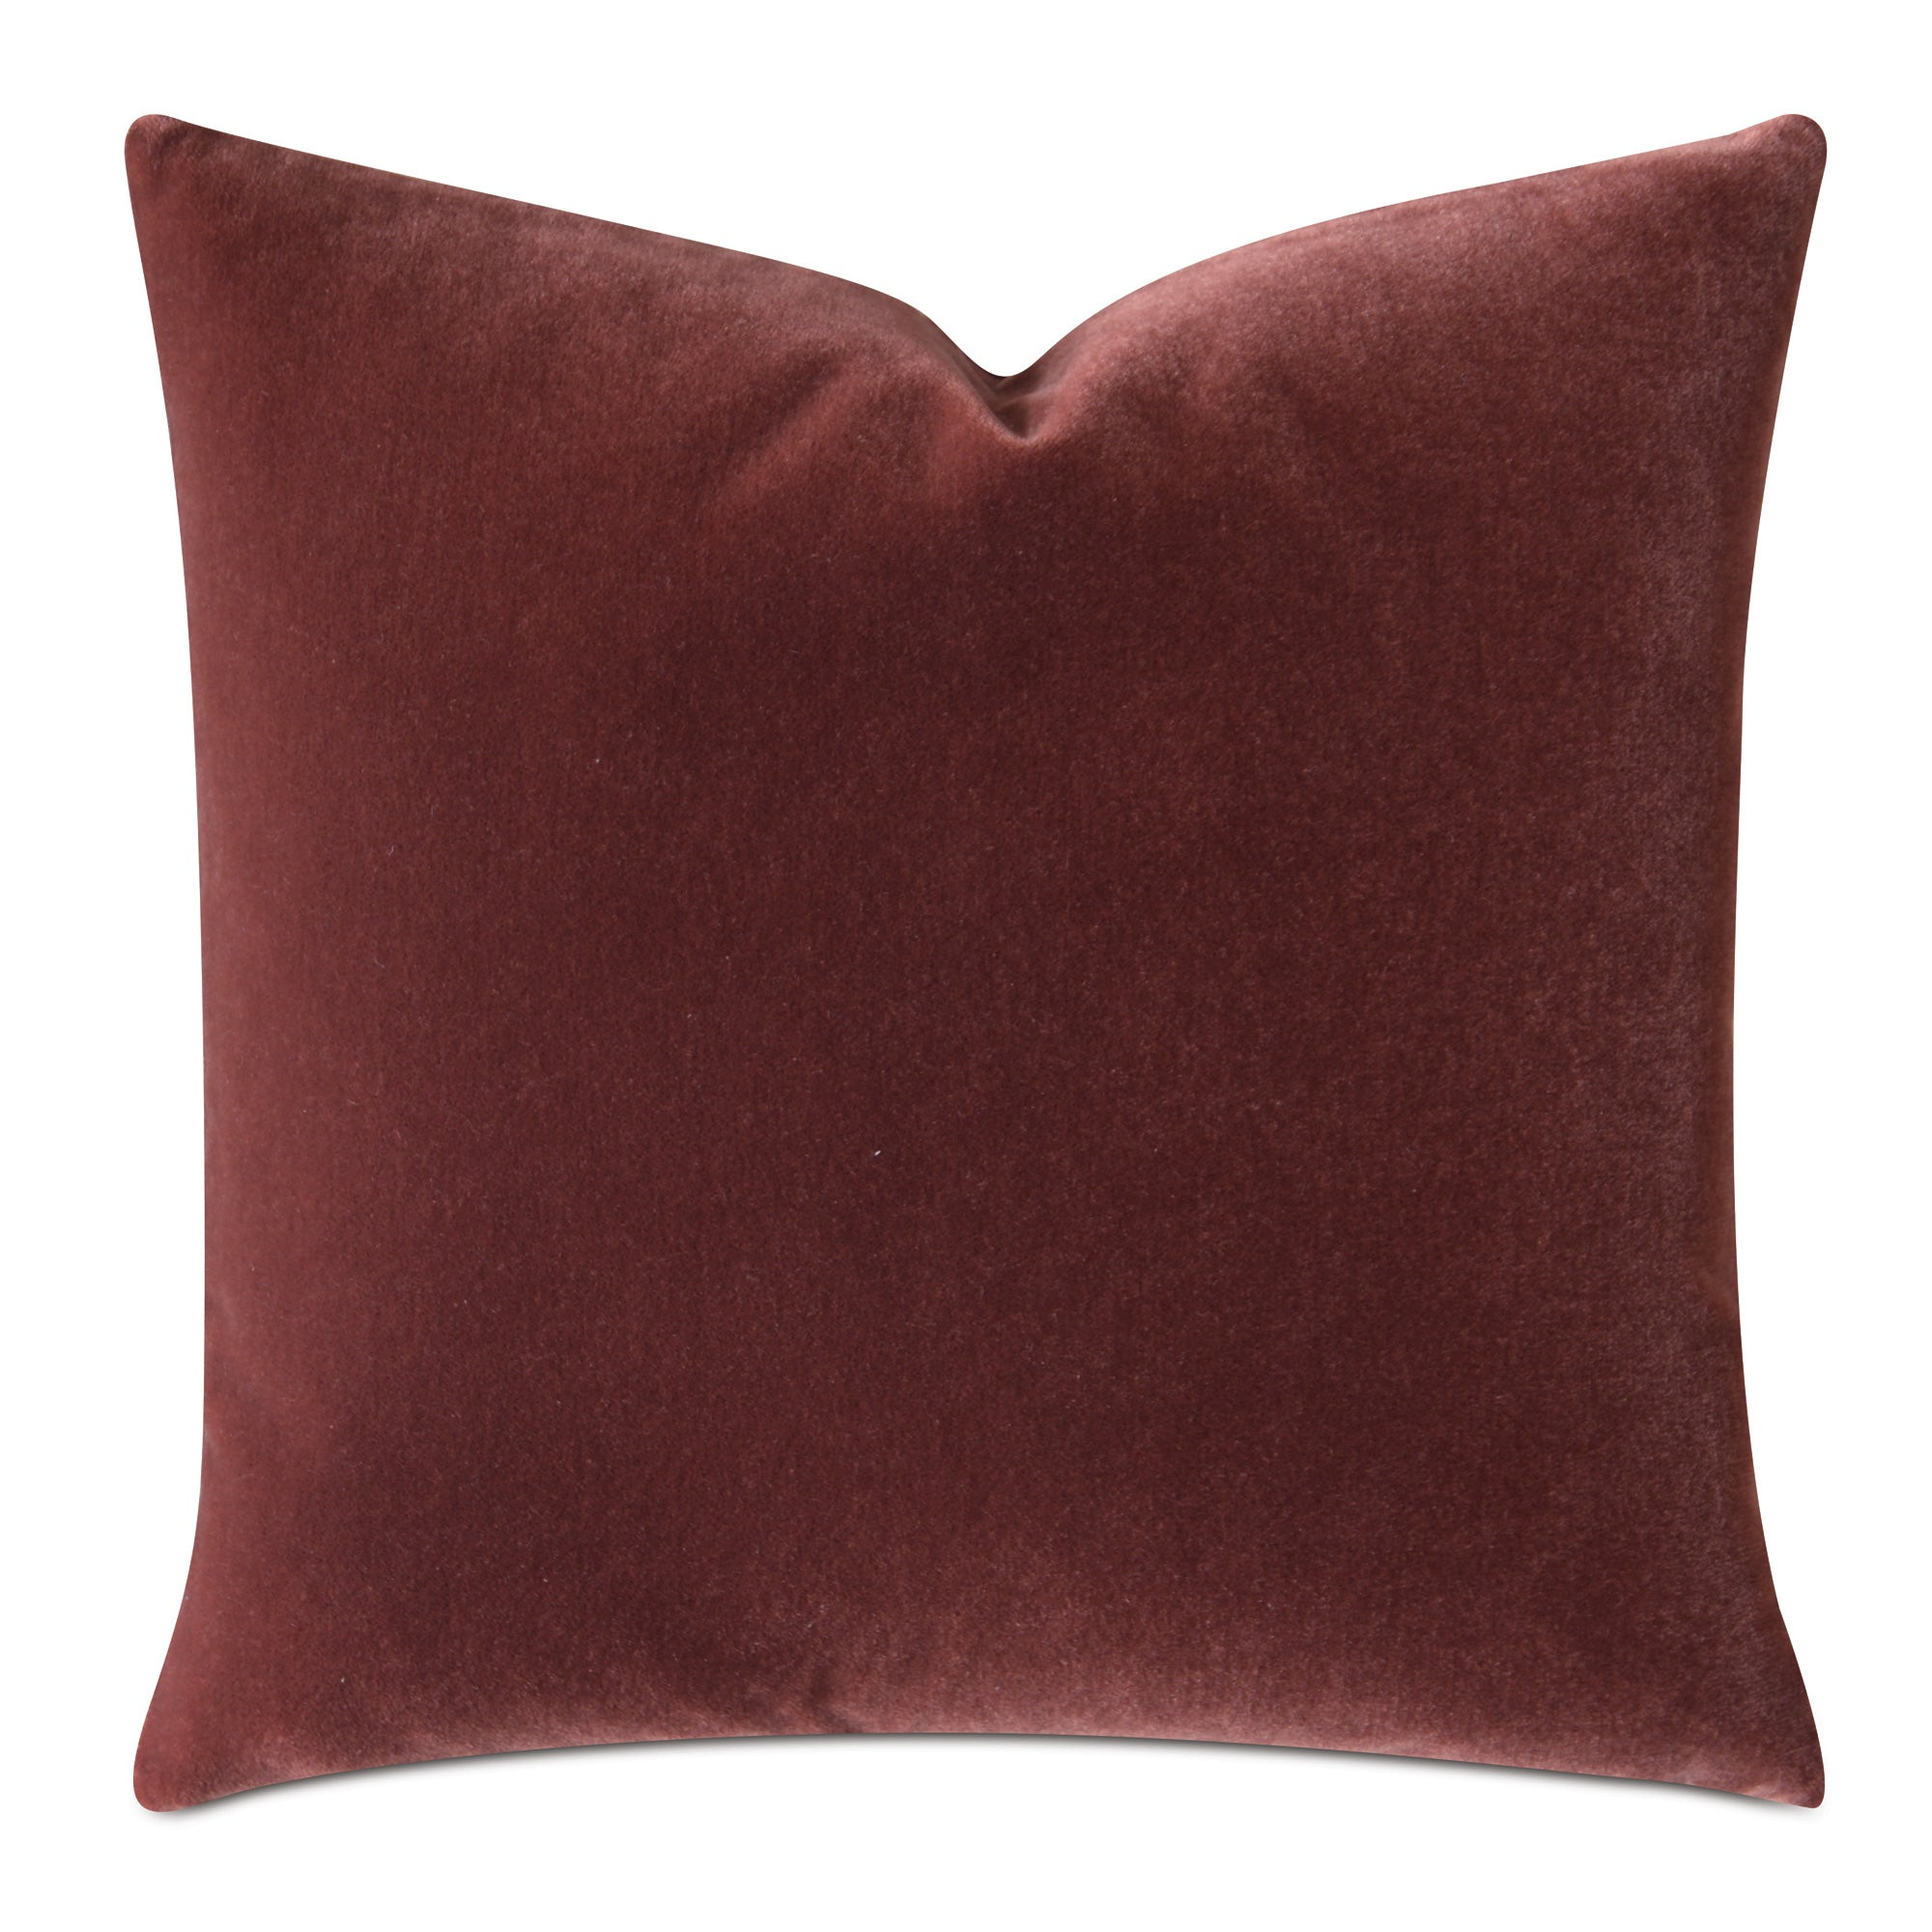 Burnt Orange Luxury Mohair Decorative Pillow Cover  Cayenne